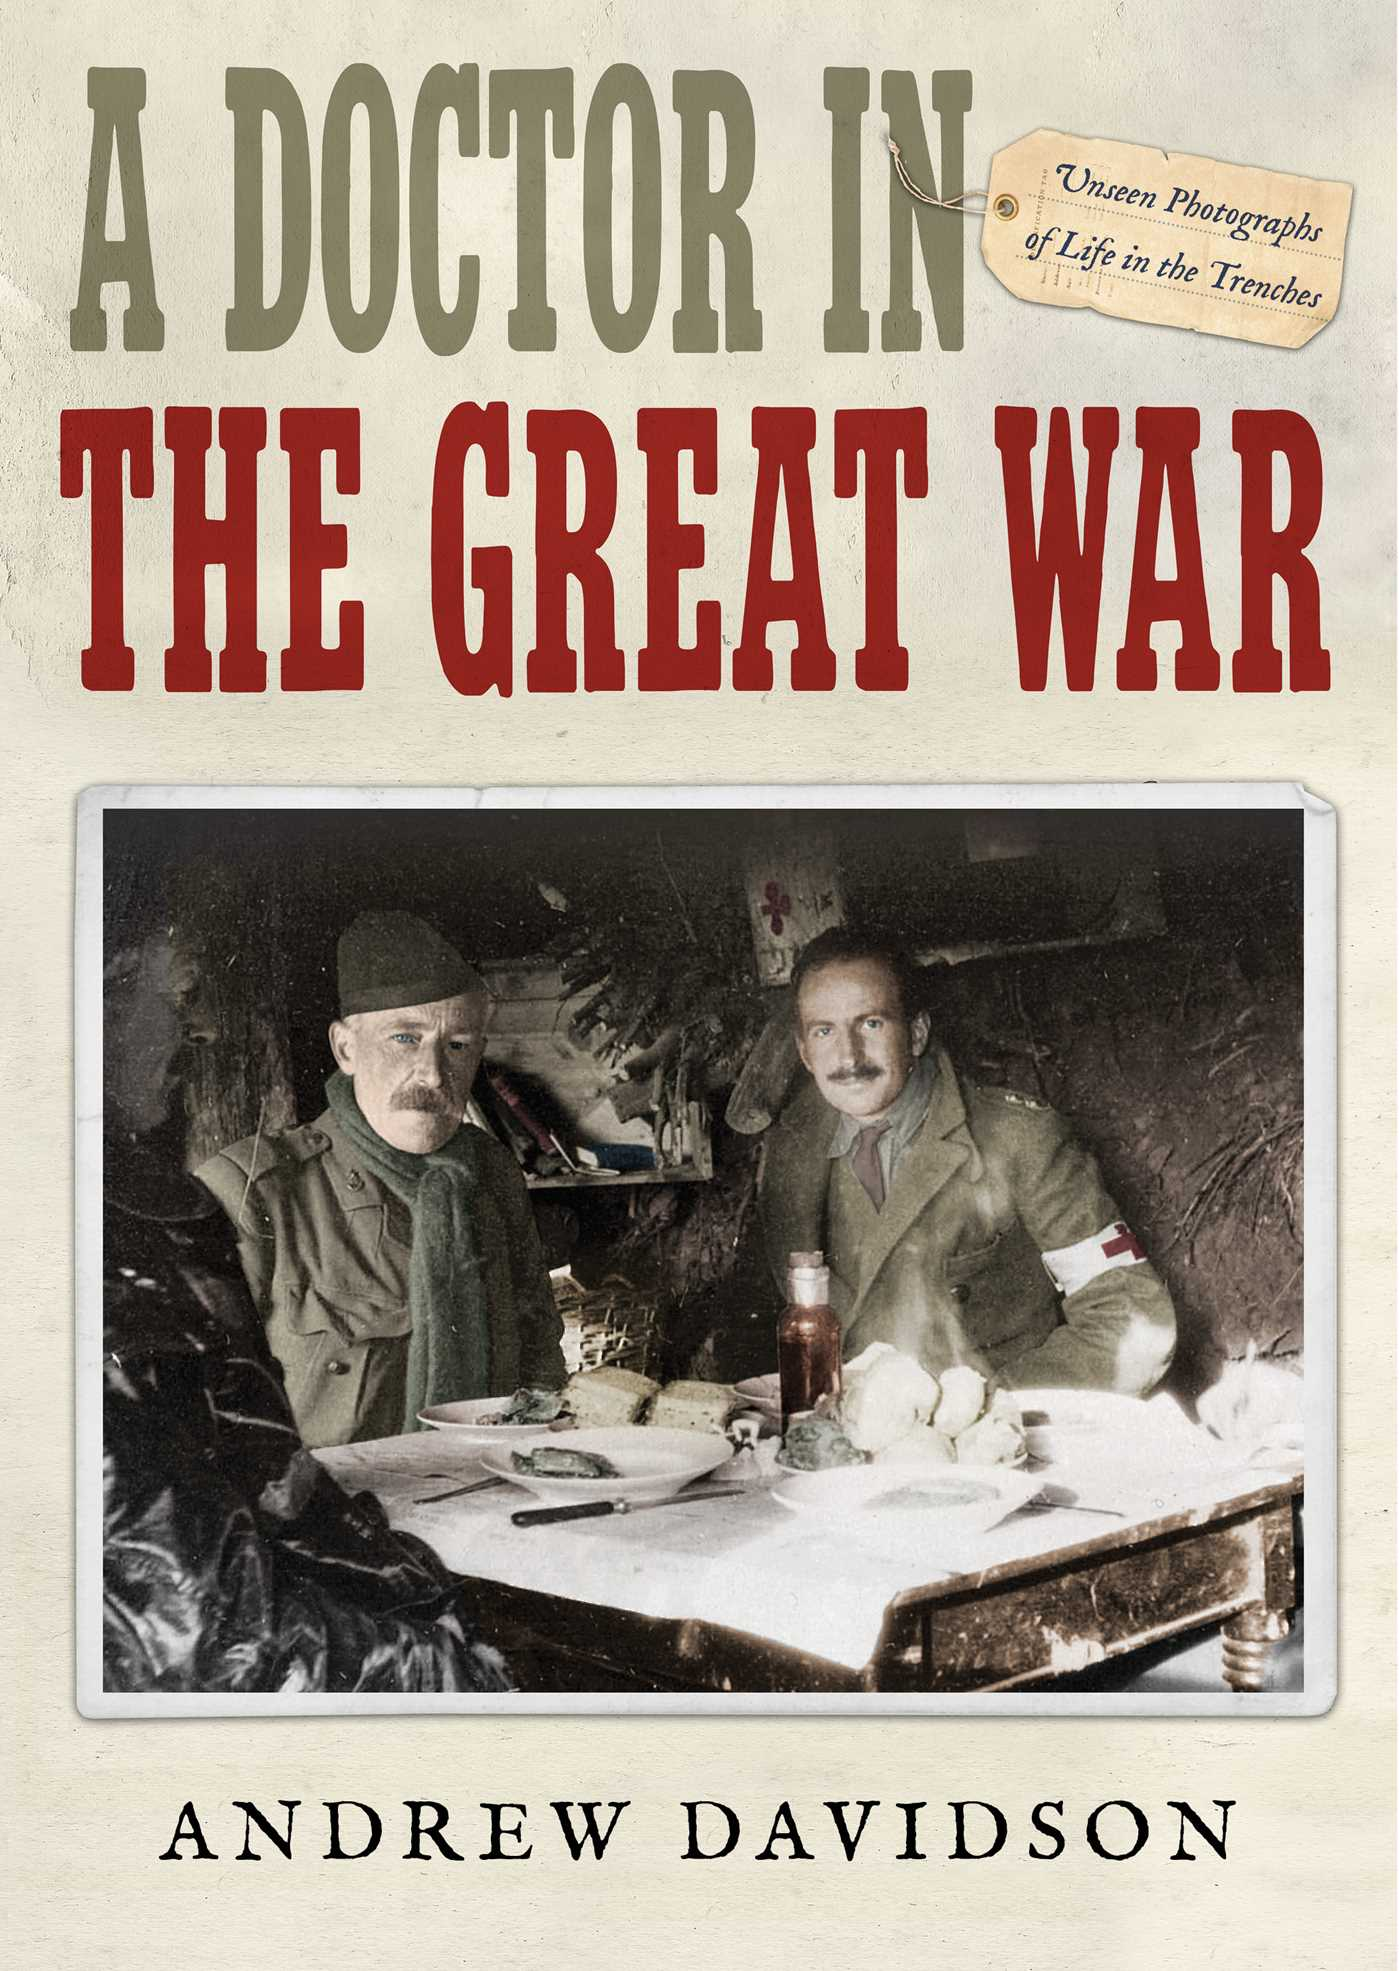 Doctor-in-the-great-war-9781476777559_hr